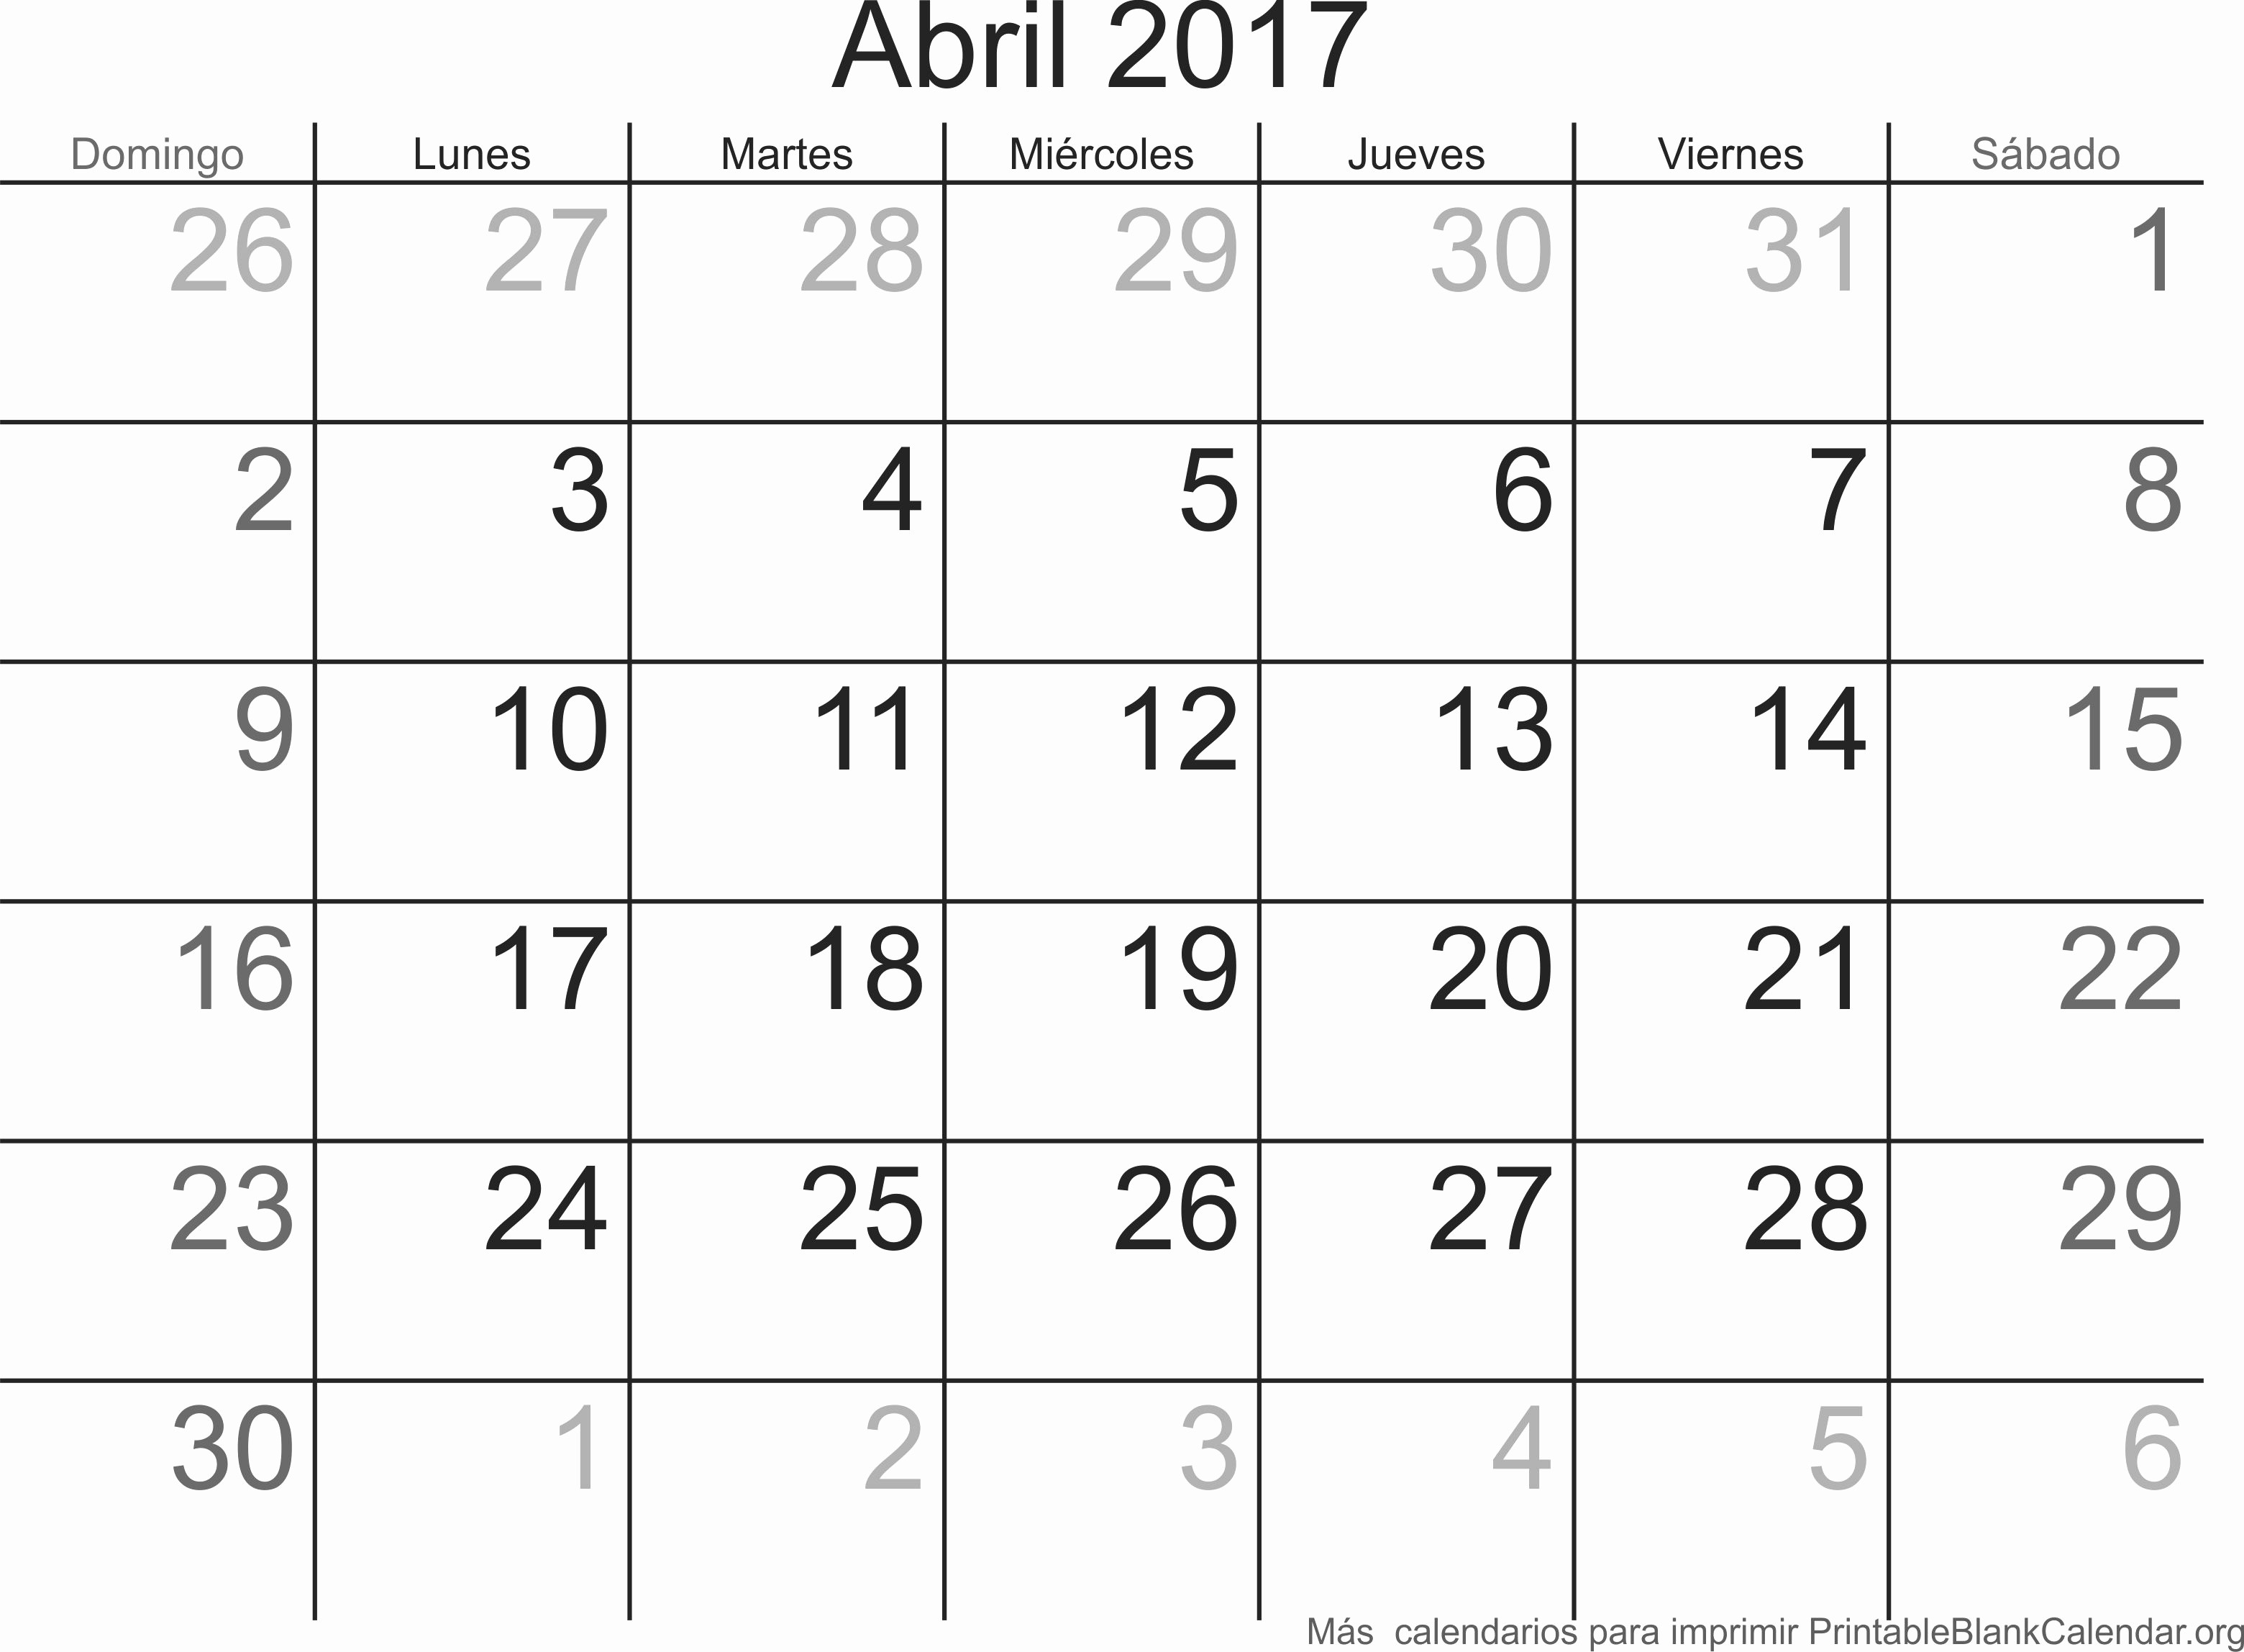 Calendario Anual 2017 Para Imprimir Awesome Abril 2017 Calendario Para Imprimir Calendarios Para